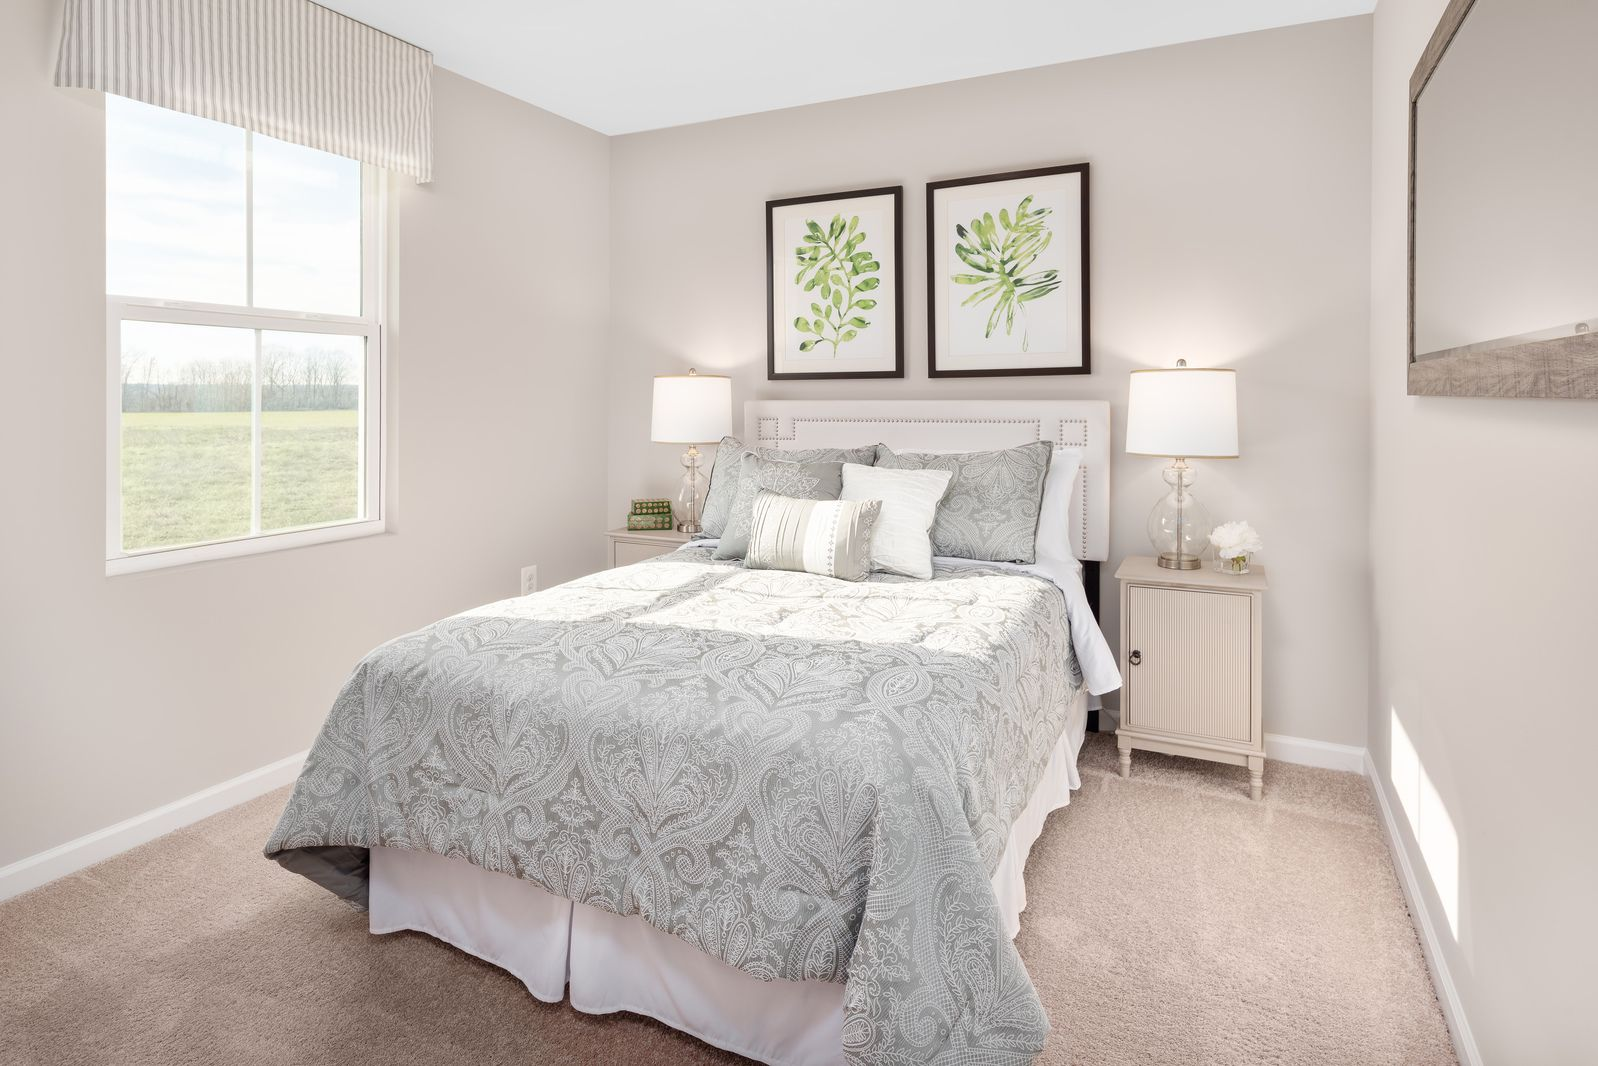 Bedroom featured in the Birch Basement By Ryan Homes in Hagerstown, MD